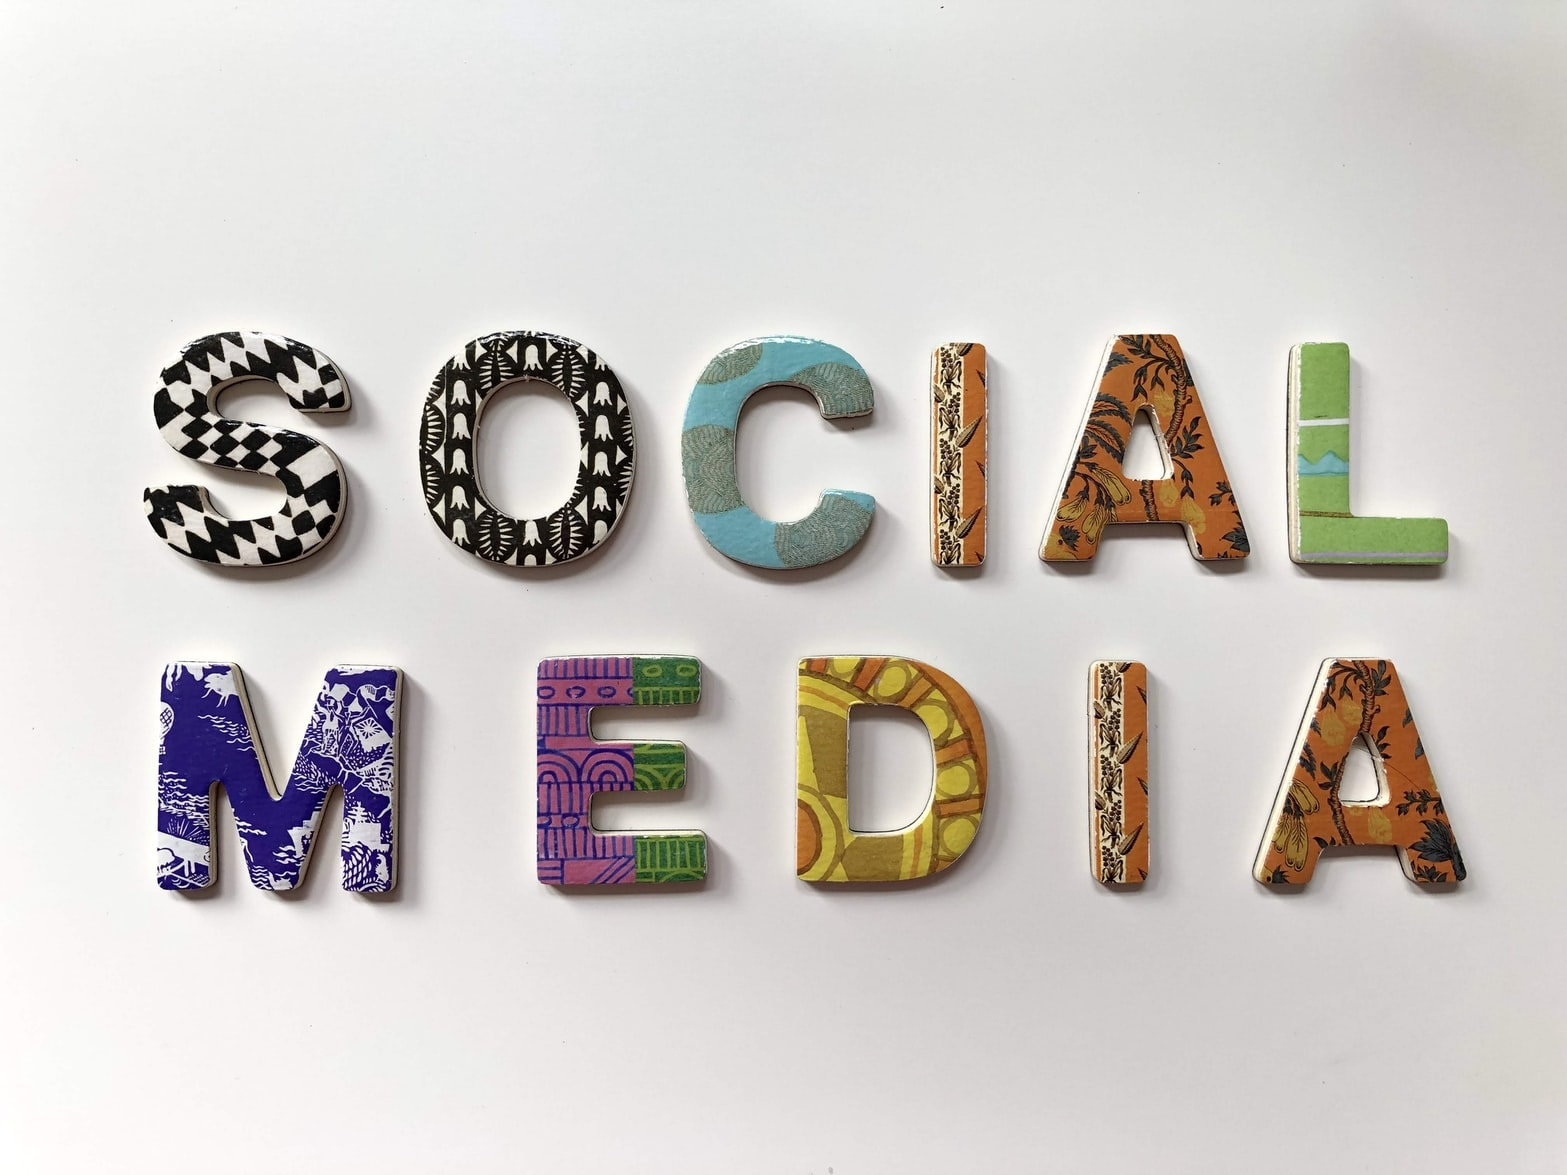 How To Become An Influencer on Social Media?: 10 Easy Steps 3